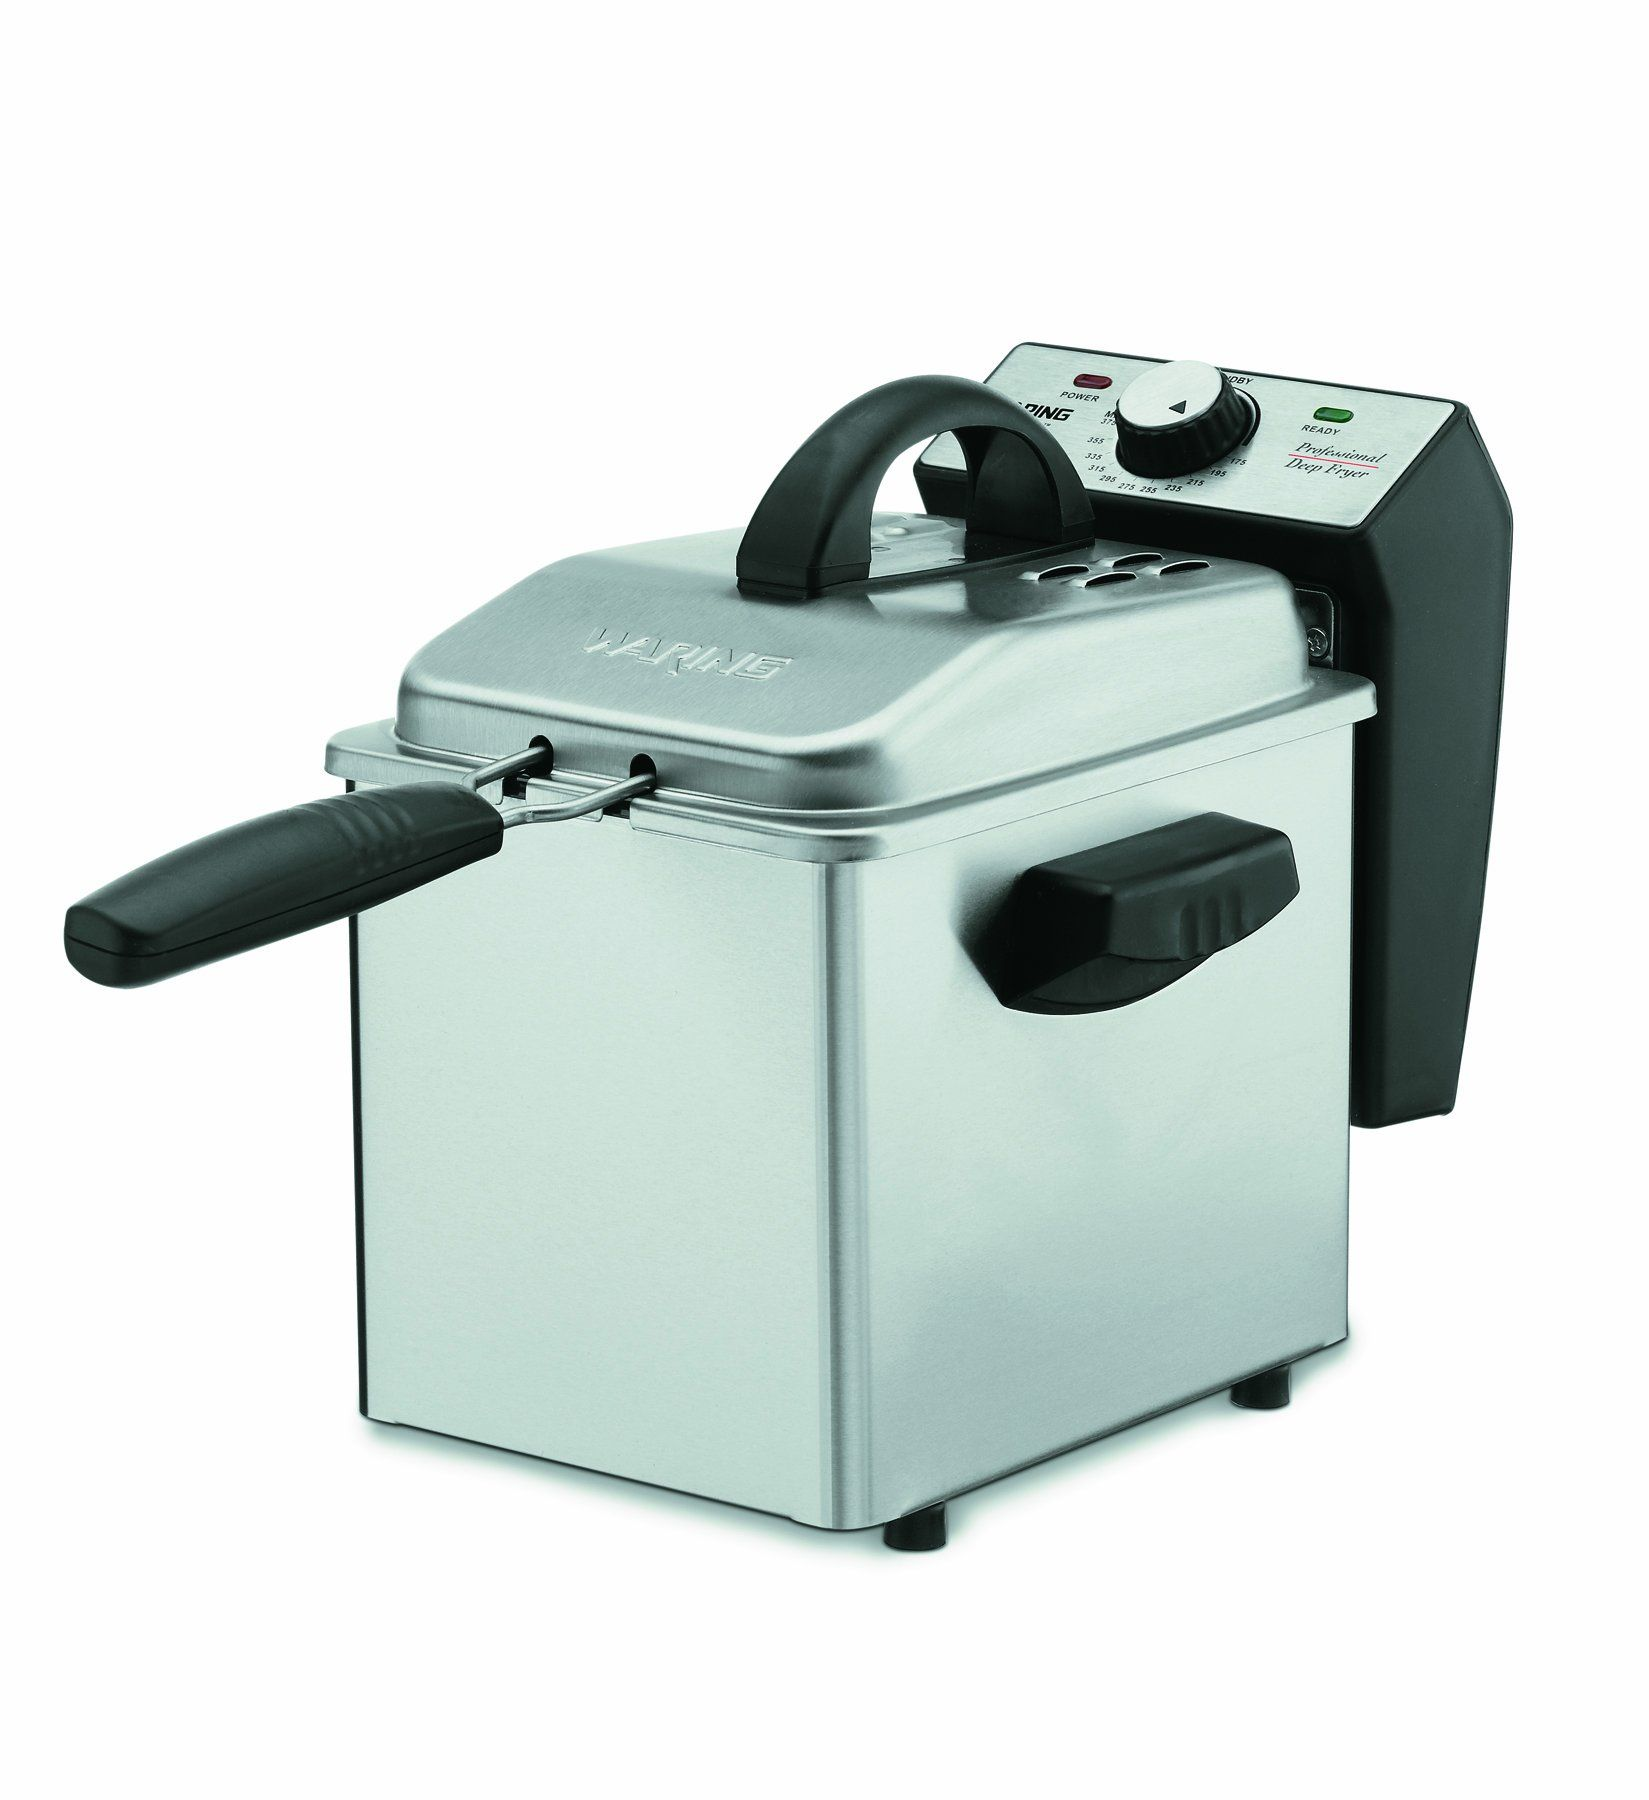 Waring Df55 Professional Mini 1 2 7 Pound Capacity Stainless Steel